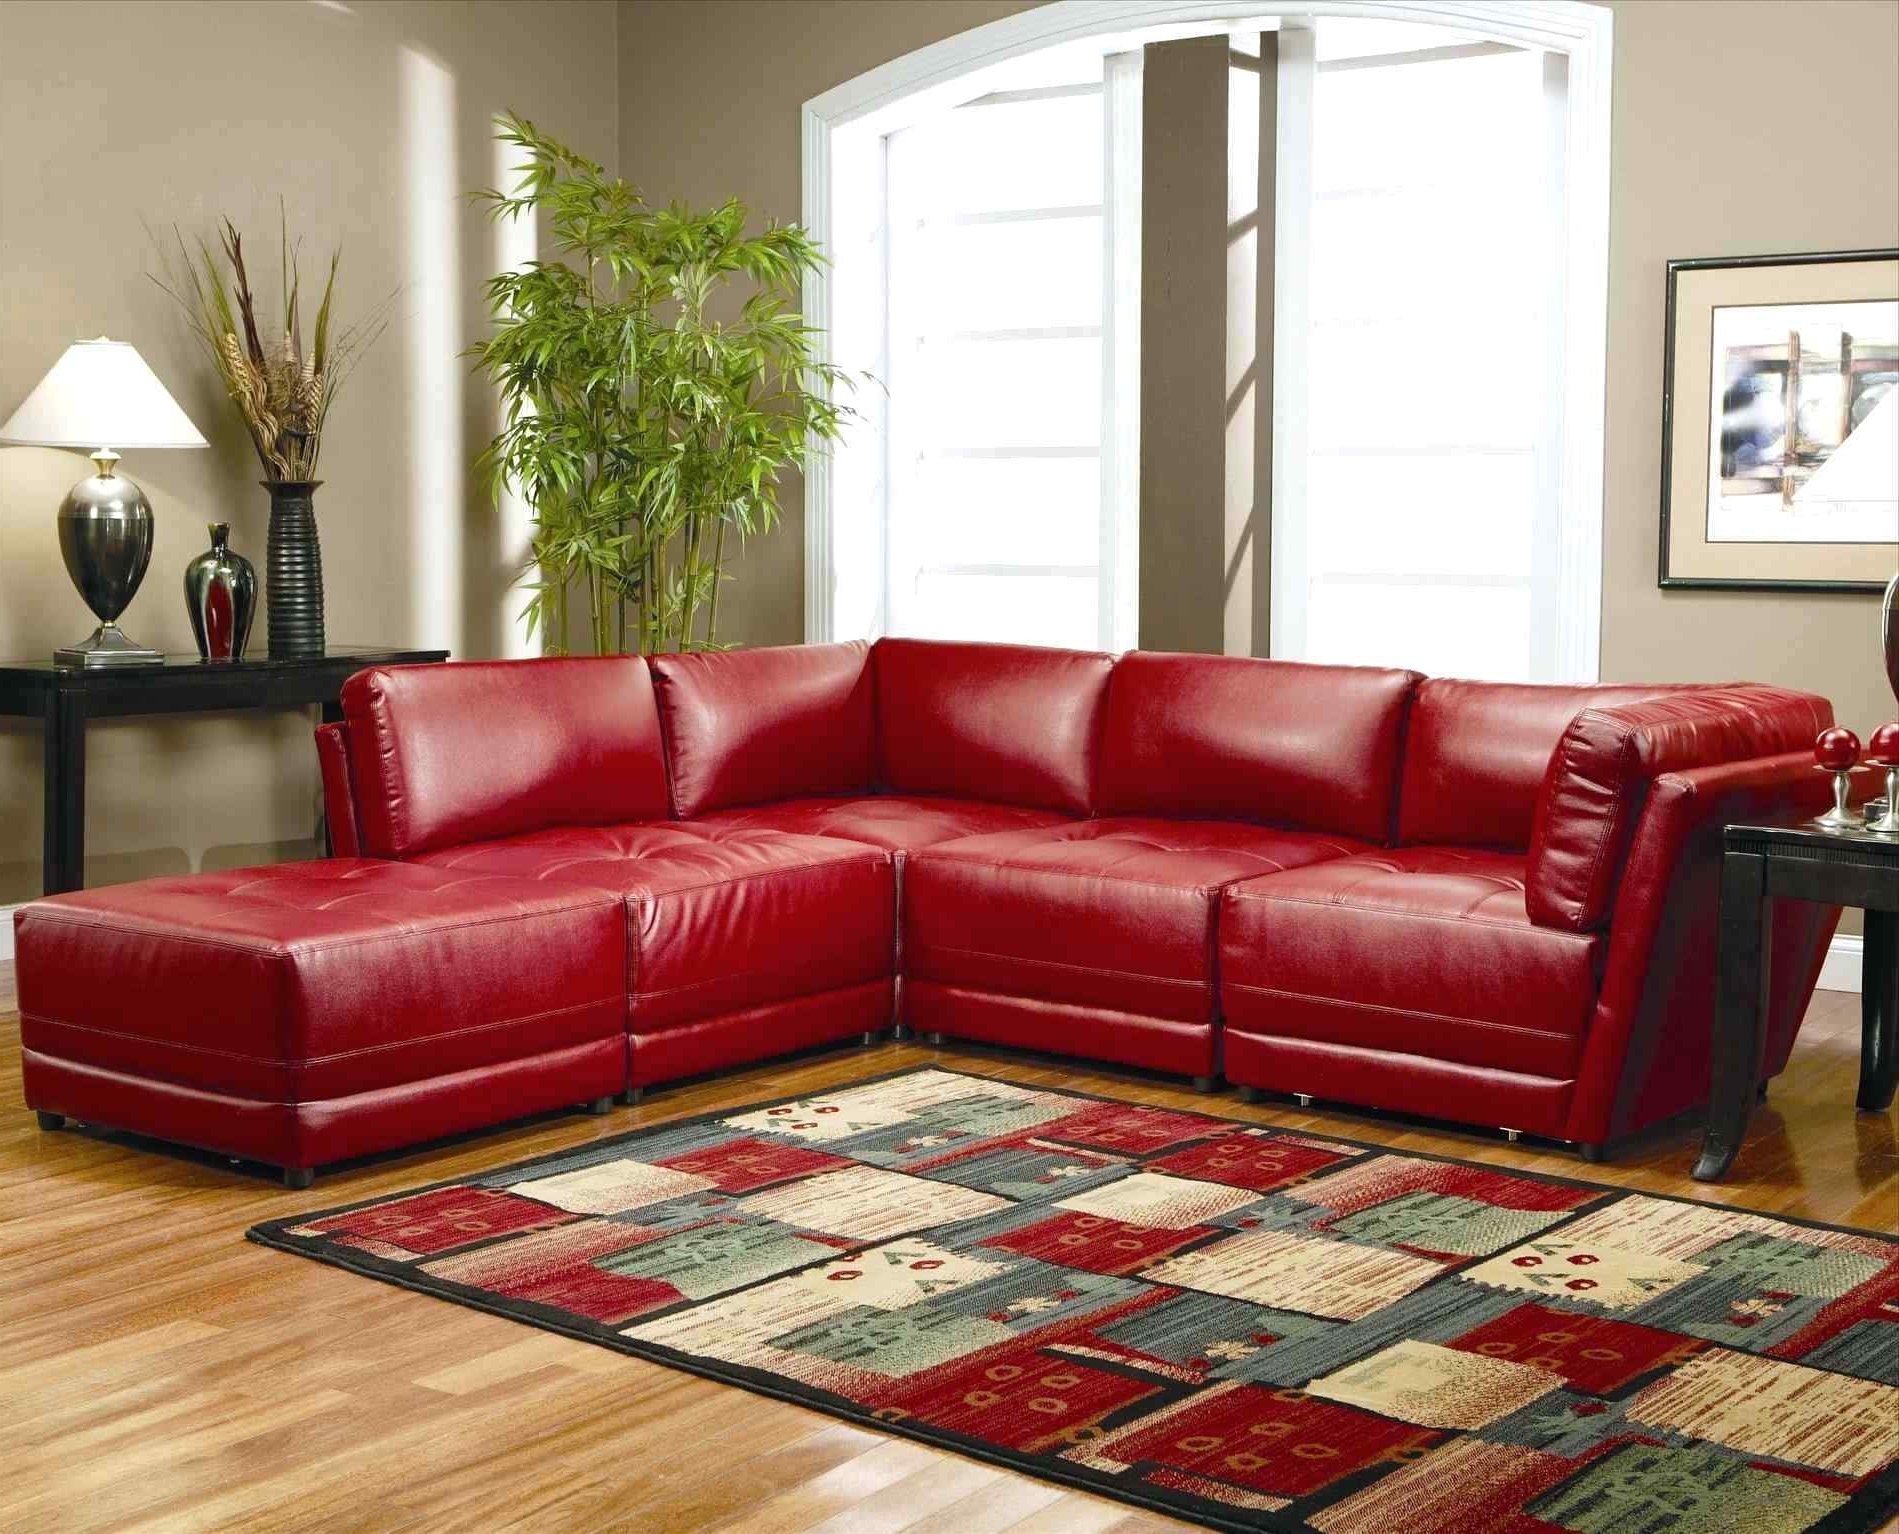 Red Leather Couches For Living Room Pertaining To Favorite Stunning Red Leather Couch Living Room Ikea Klippan U (View 17 of 20)